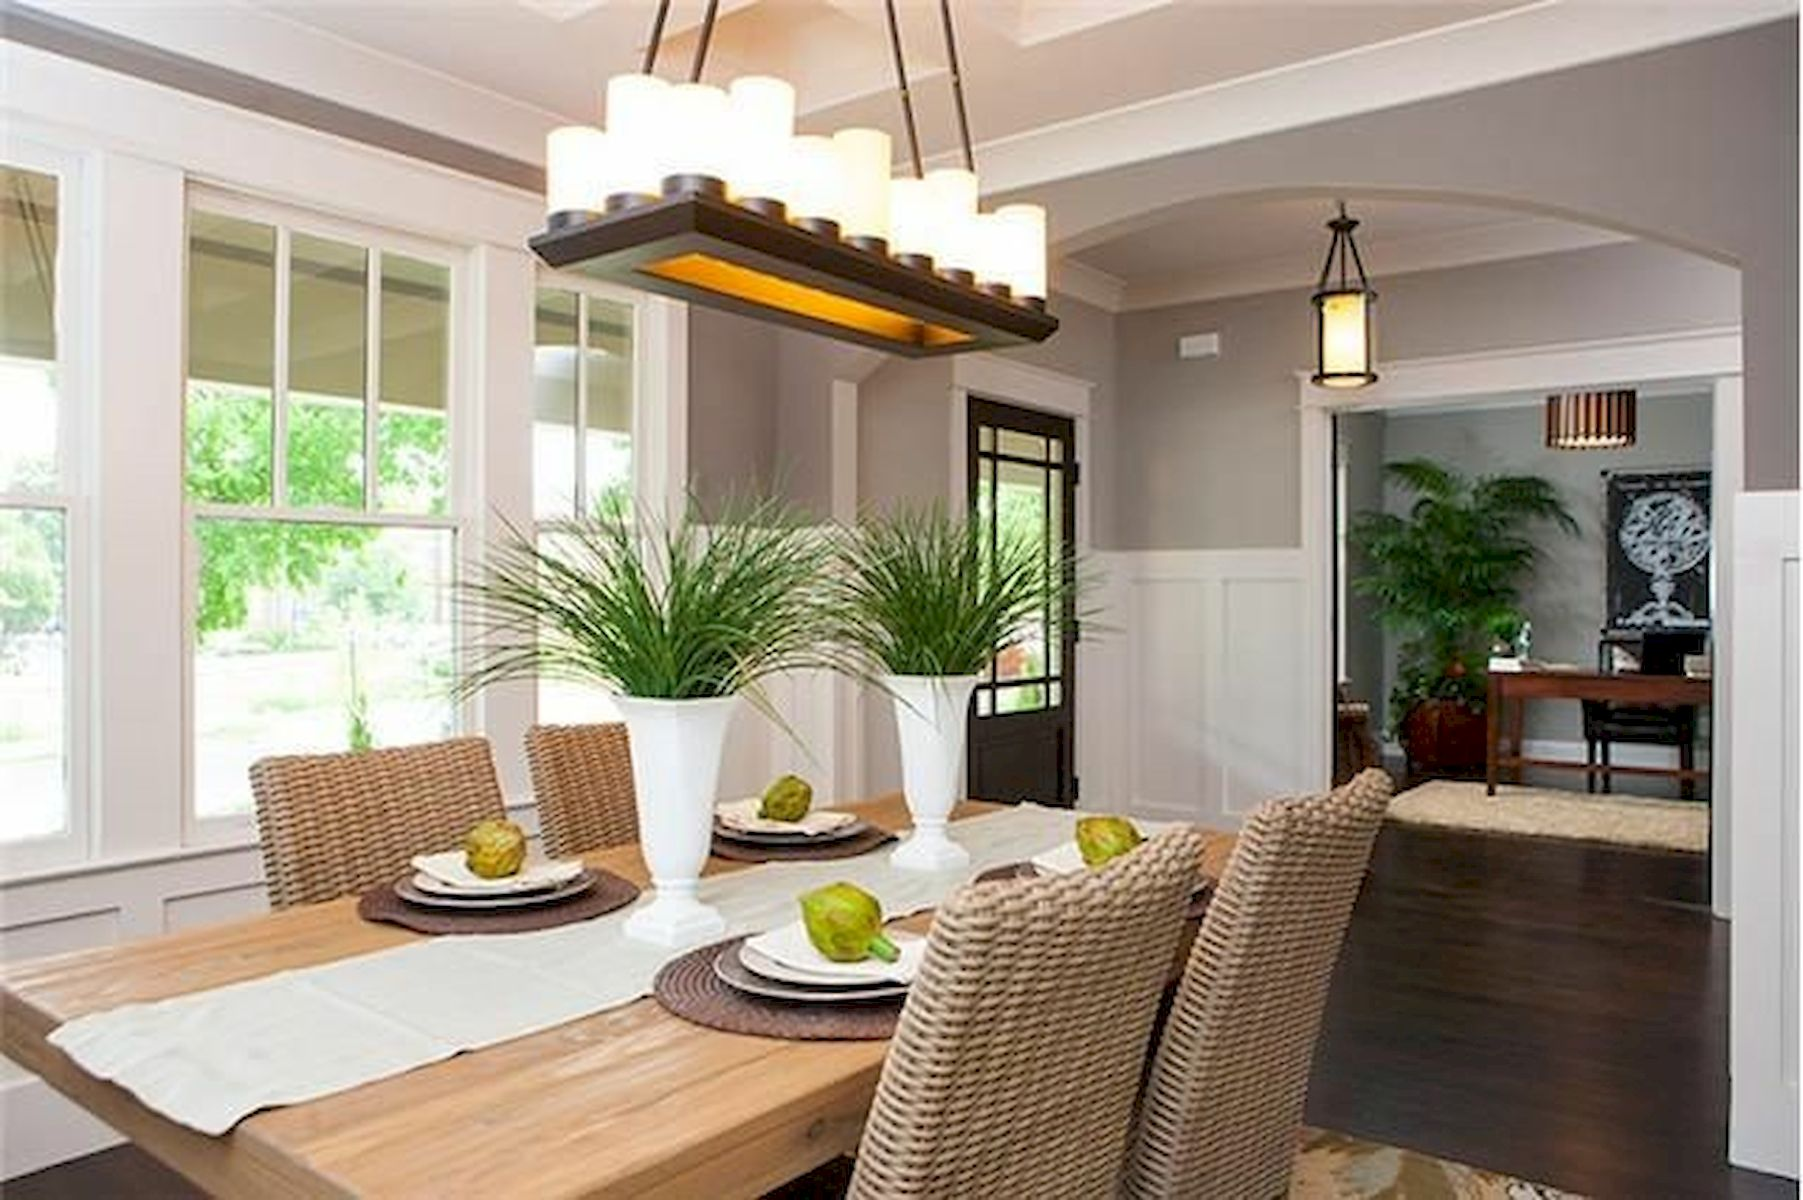 50 Gorgeous Dinning Room Design and Decor Ideas (12)